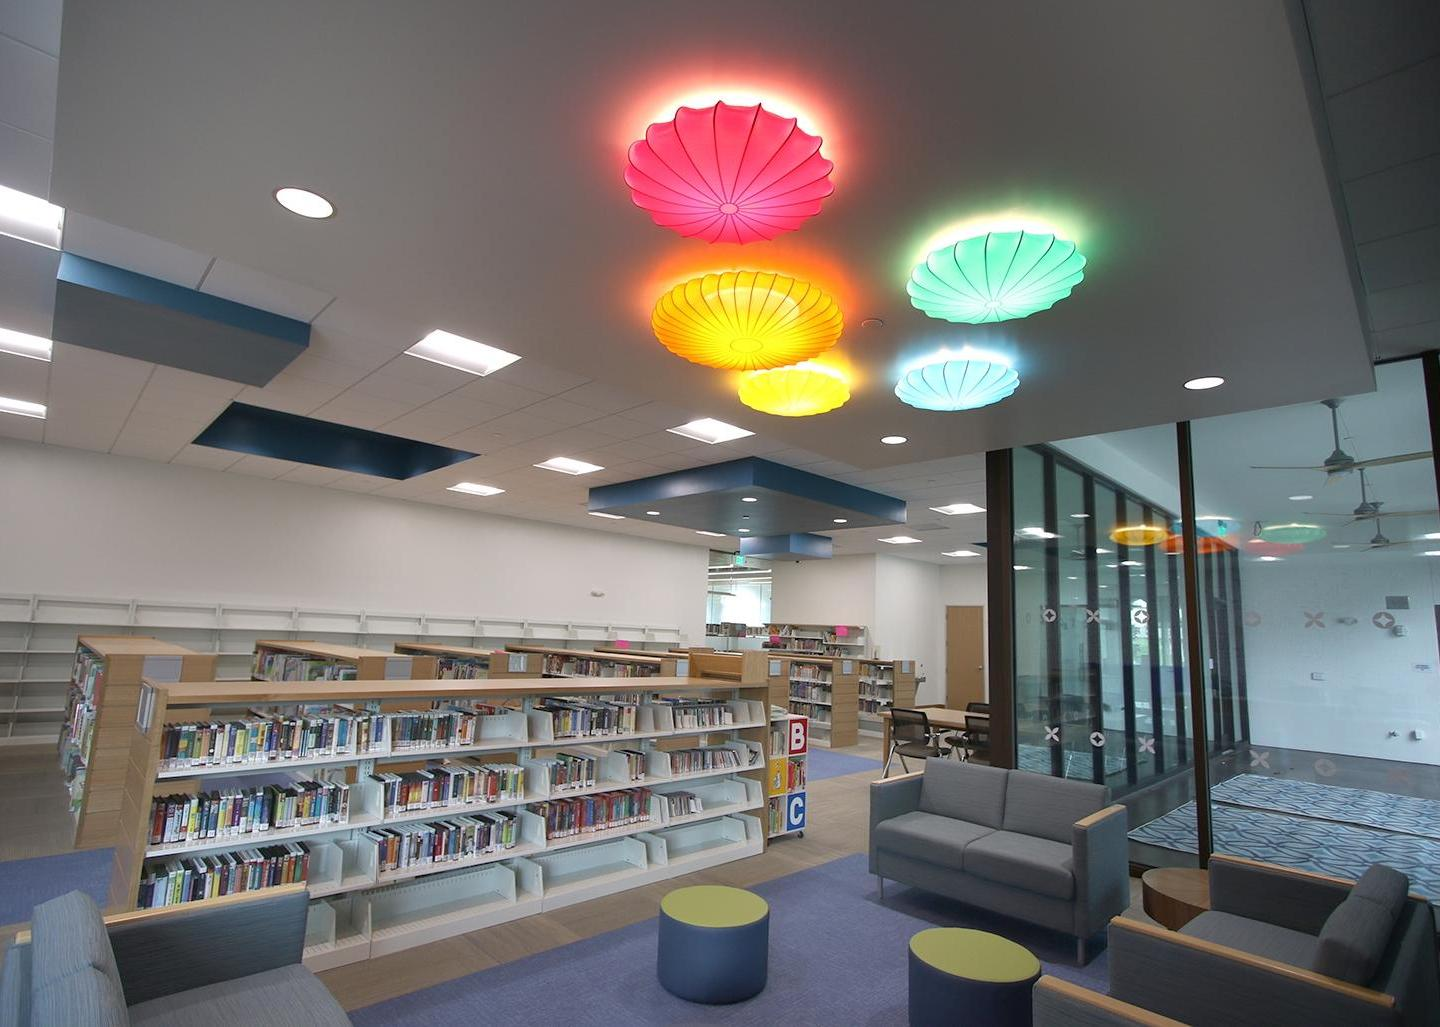 SNEAK PEAK AT THE NEW VENICE LIBRARY